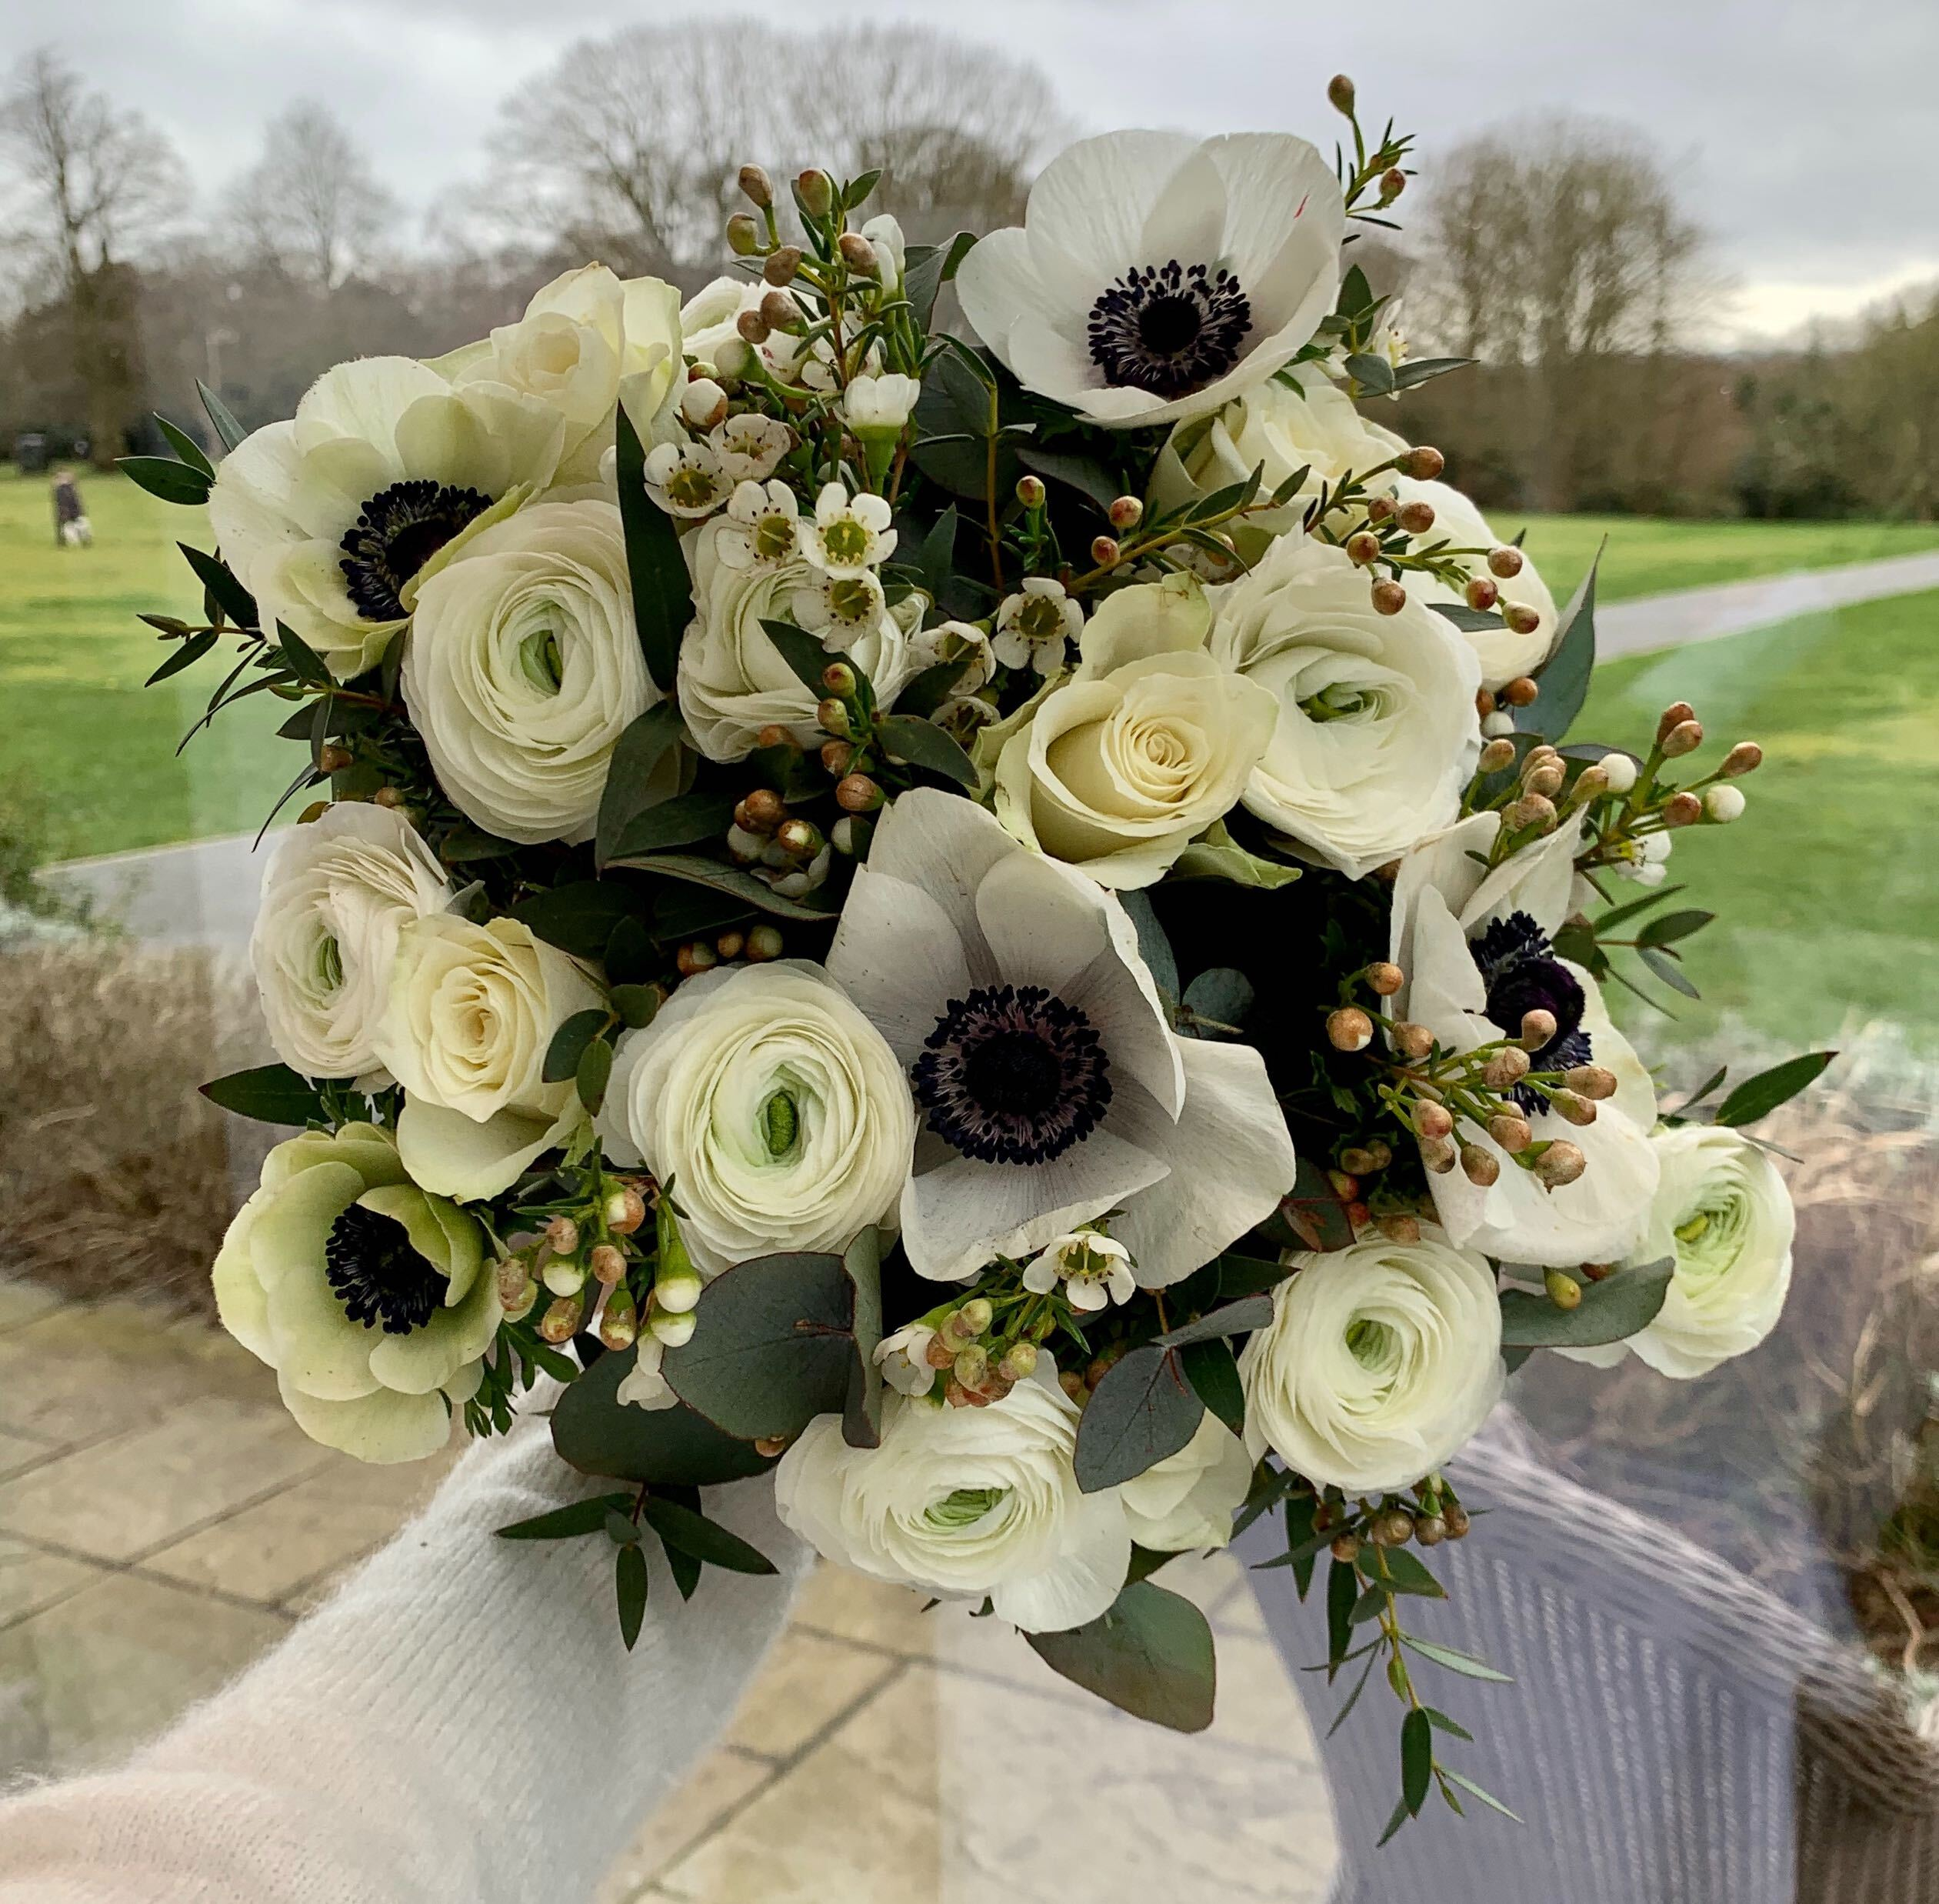 Winter bridal bouquet with ranunculus and anemones